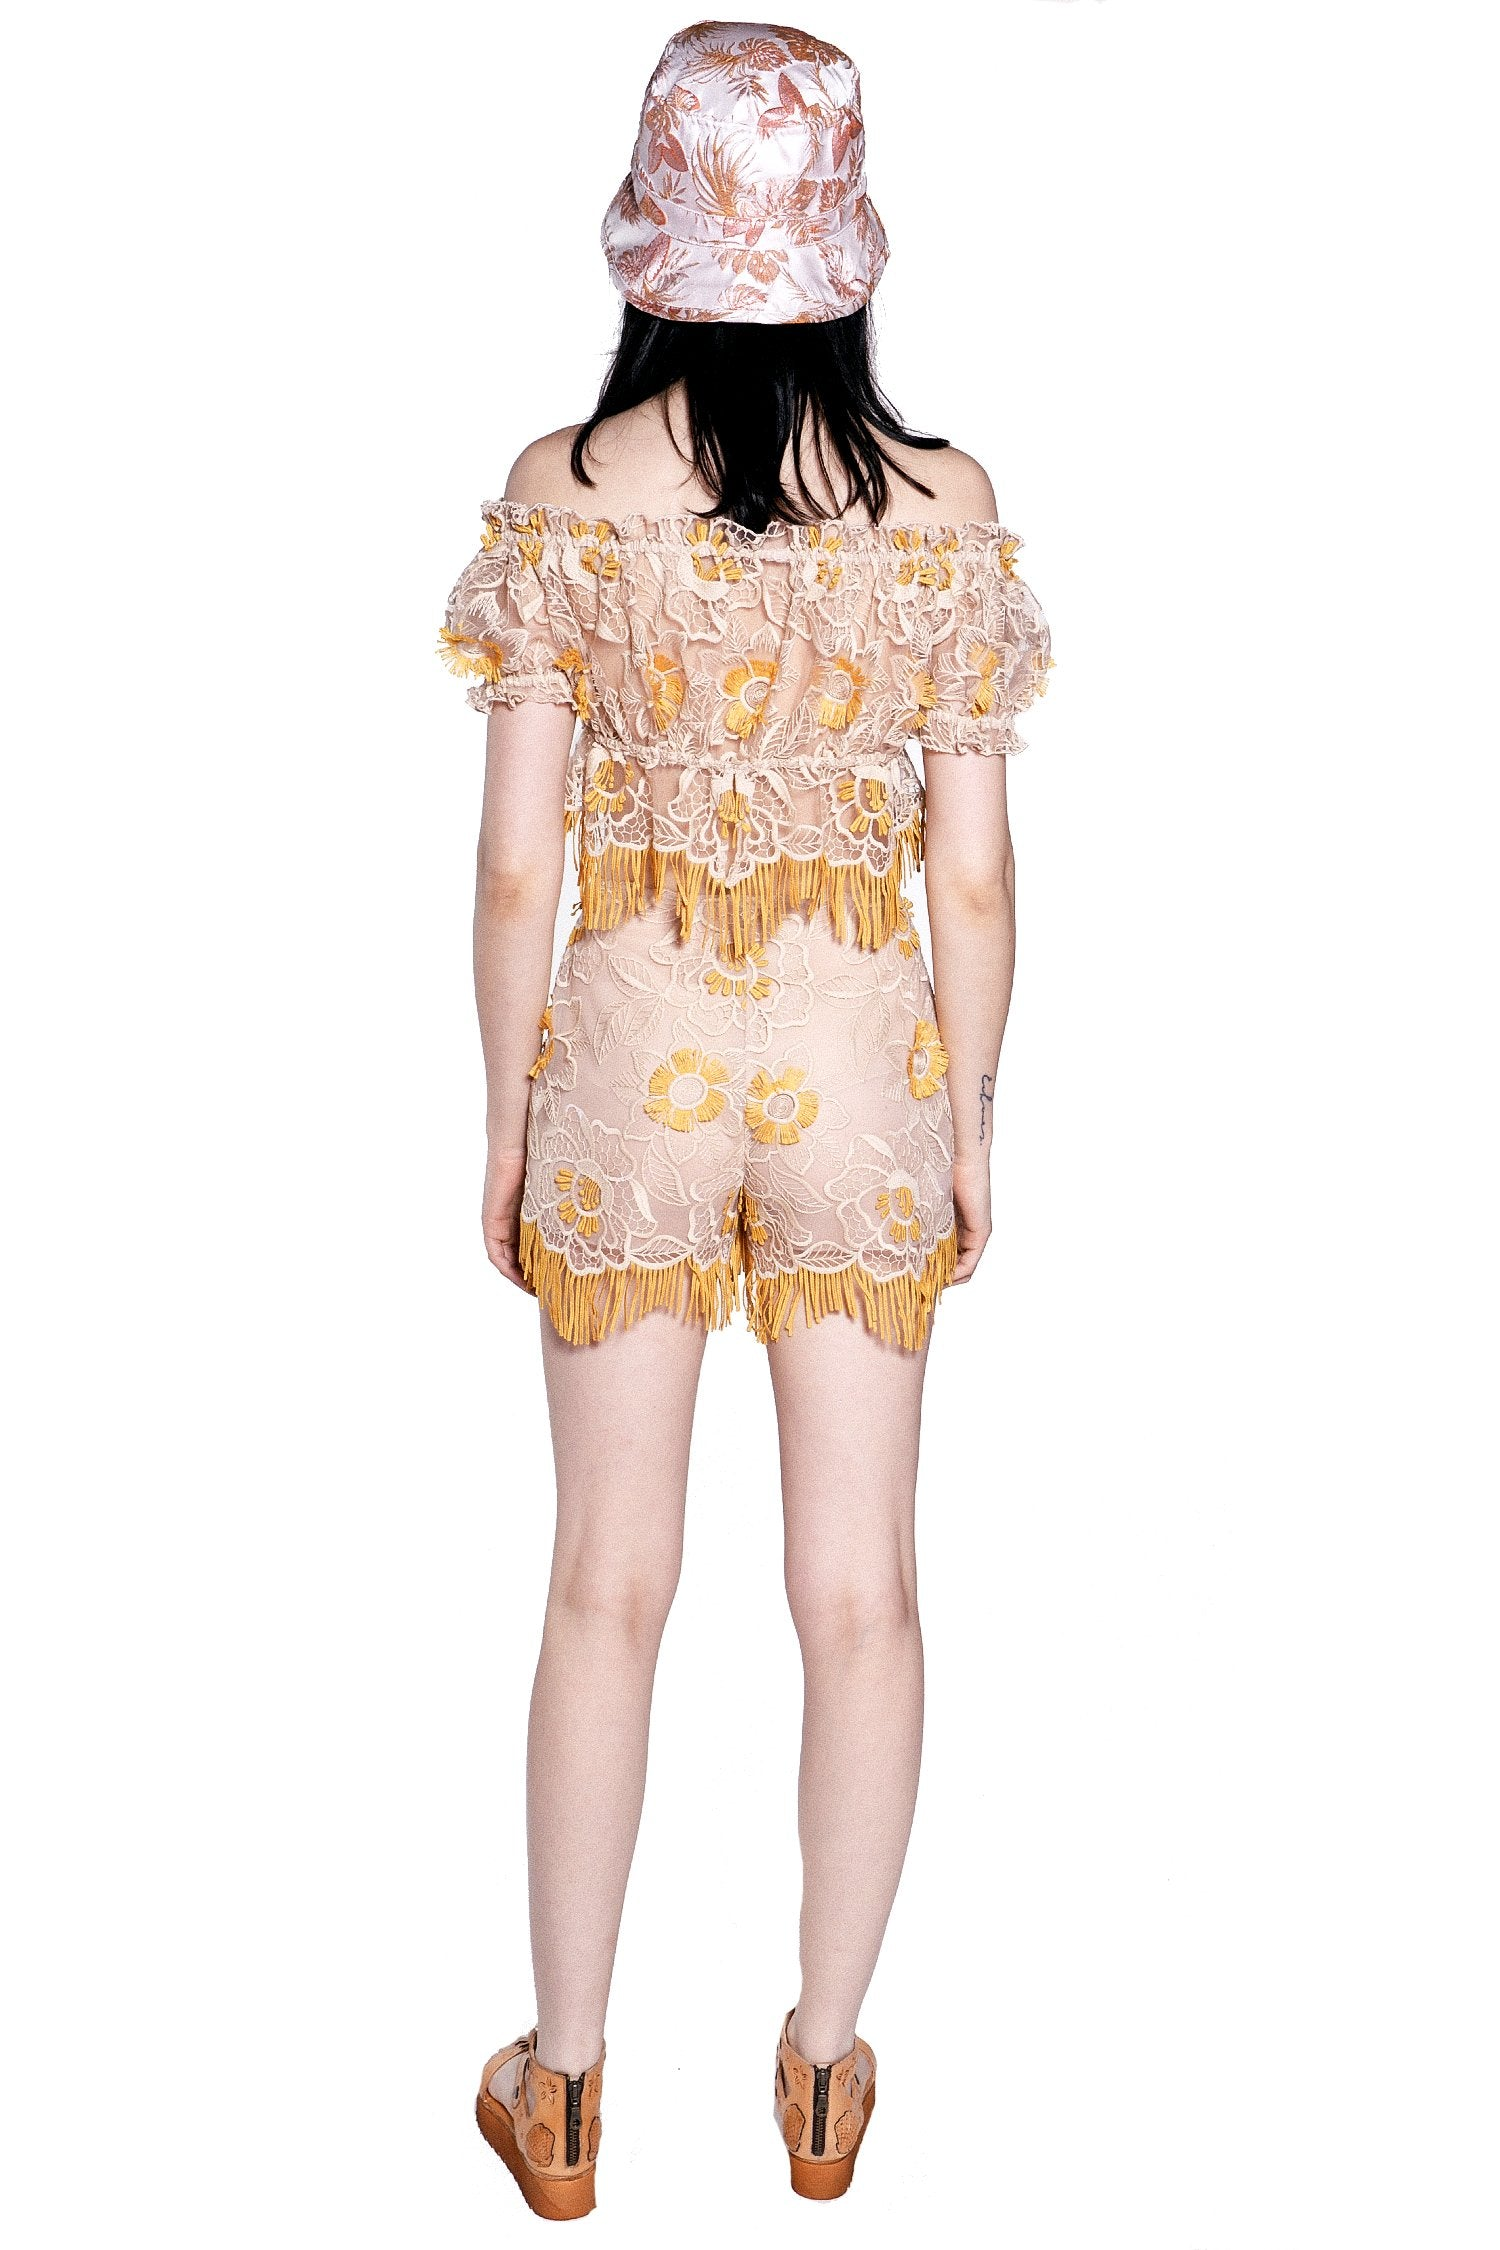 Lotus Flower Embroidered Top – Anna Sui 6c57bf3b0311